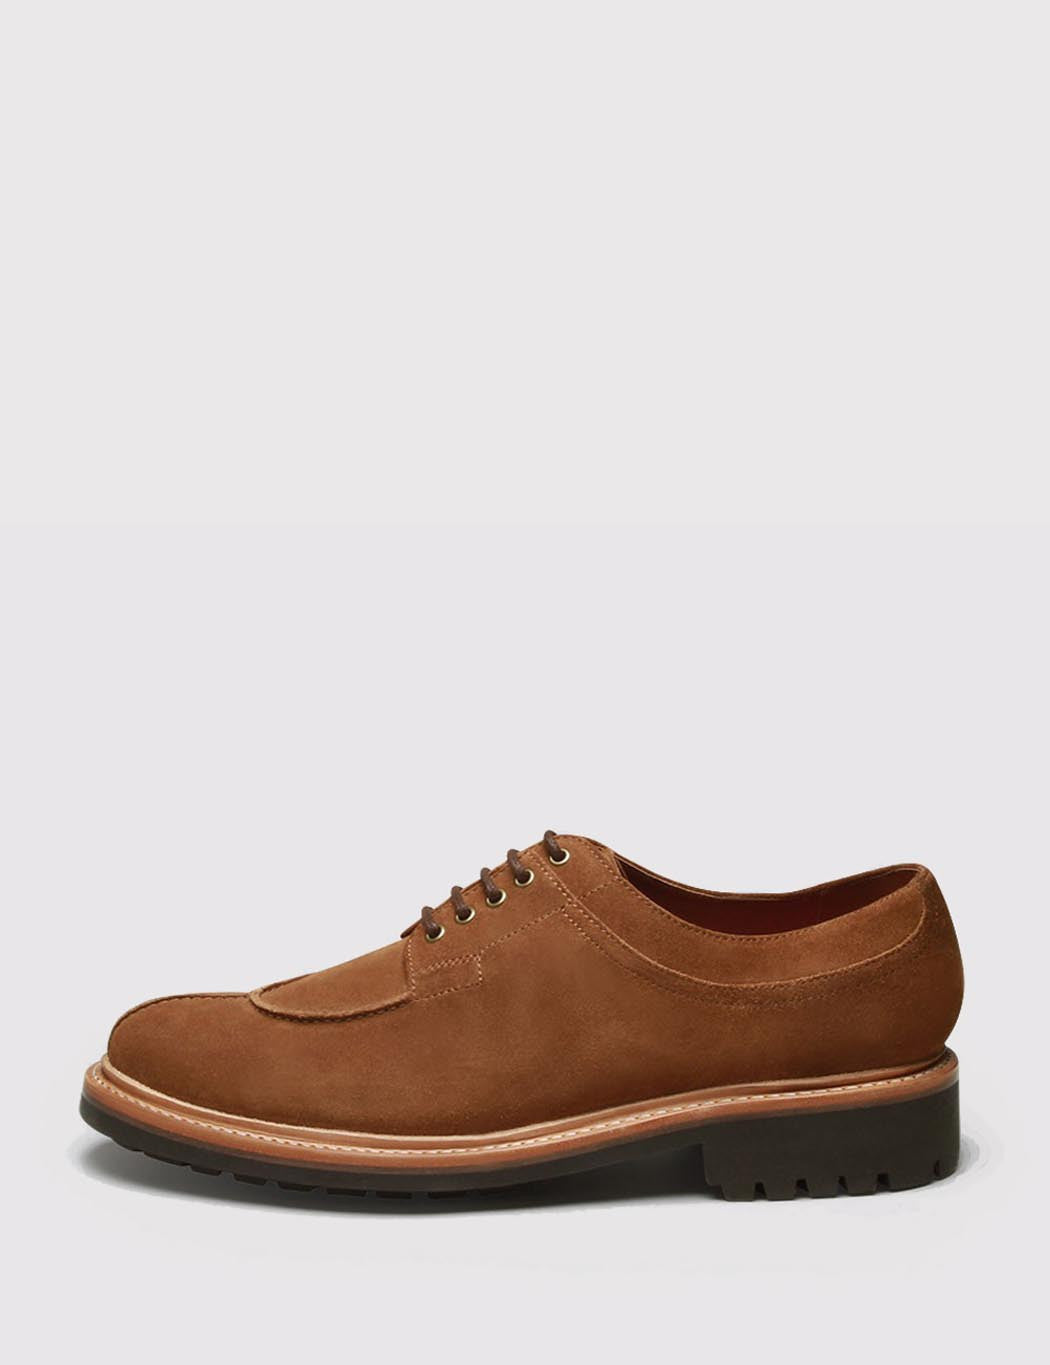 Grenson Percy Suede Apron Shoes - Snuff